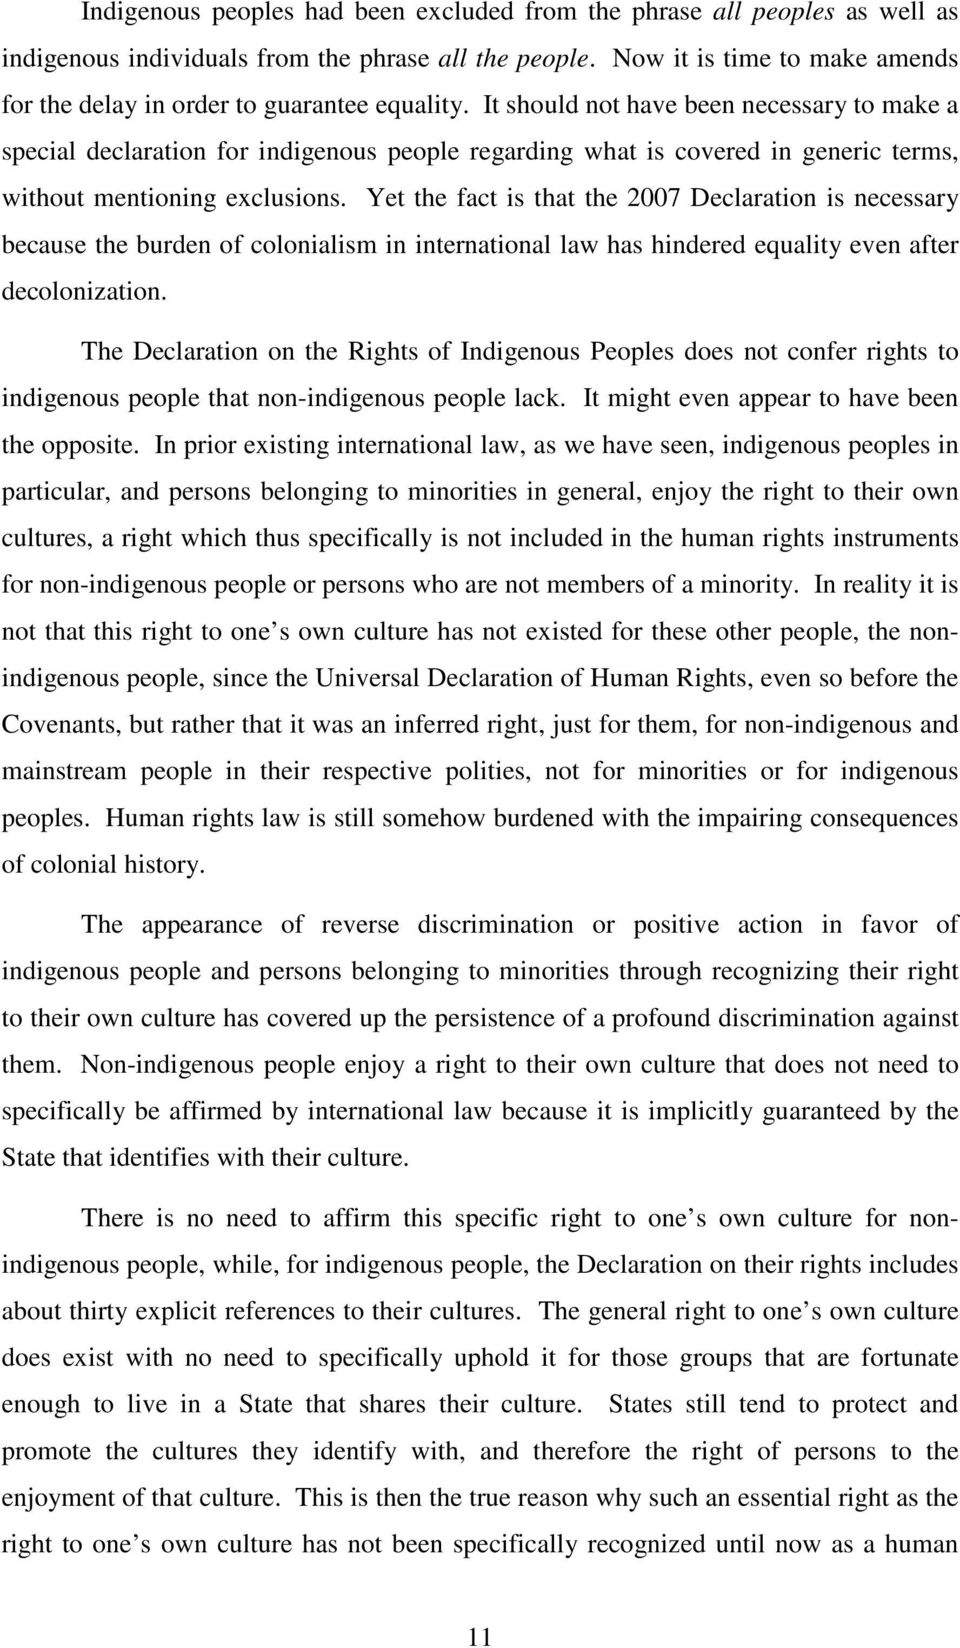 It should not have been necessary to make a special declaration for indigenous people regarding what is covered in generic terms, without mentioning exclusions.